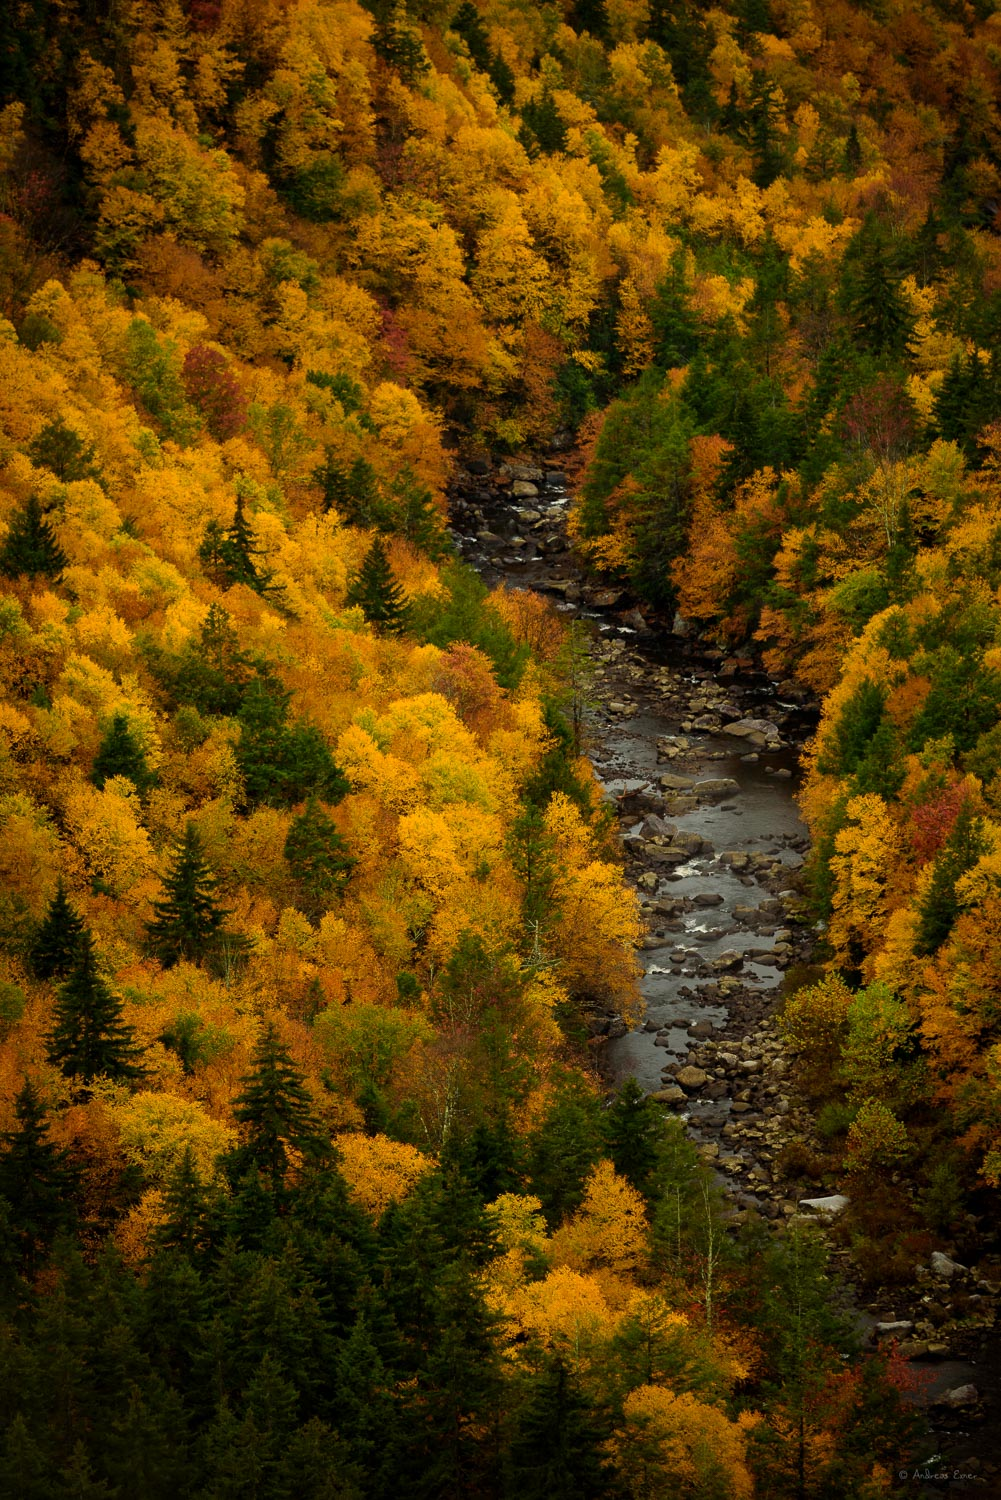 Canyon of the Blackwater River, Blackwater Falls State Park, West Virginia